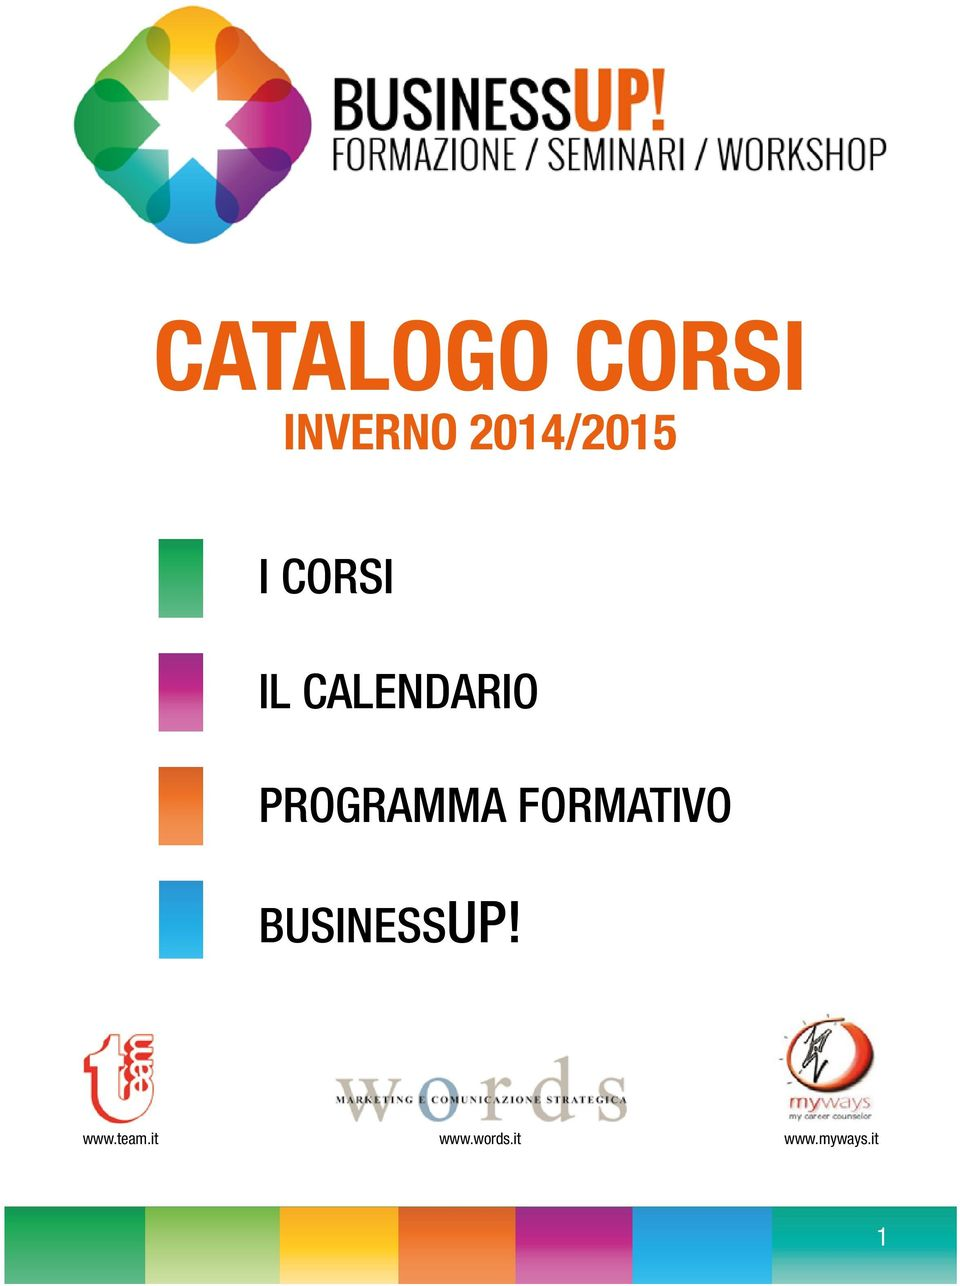 PROGRAMMA FORMATIVO BUSINESSUP!